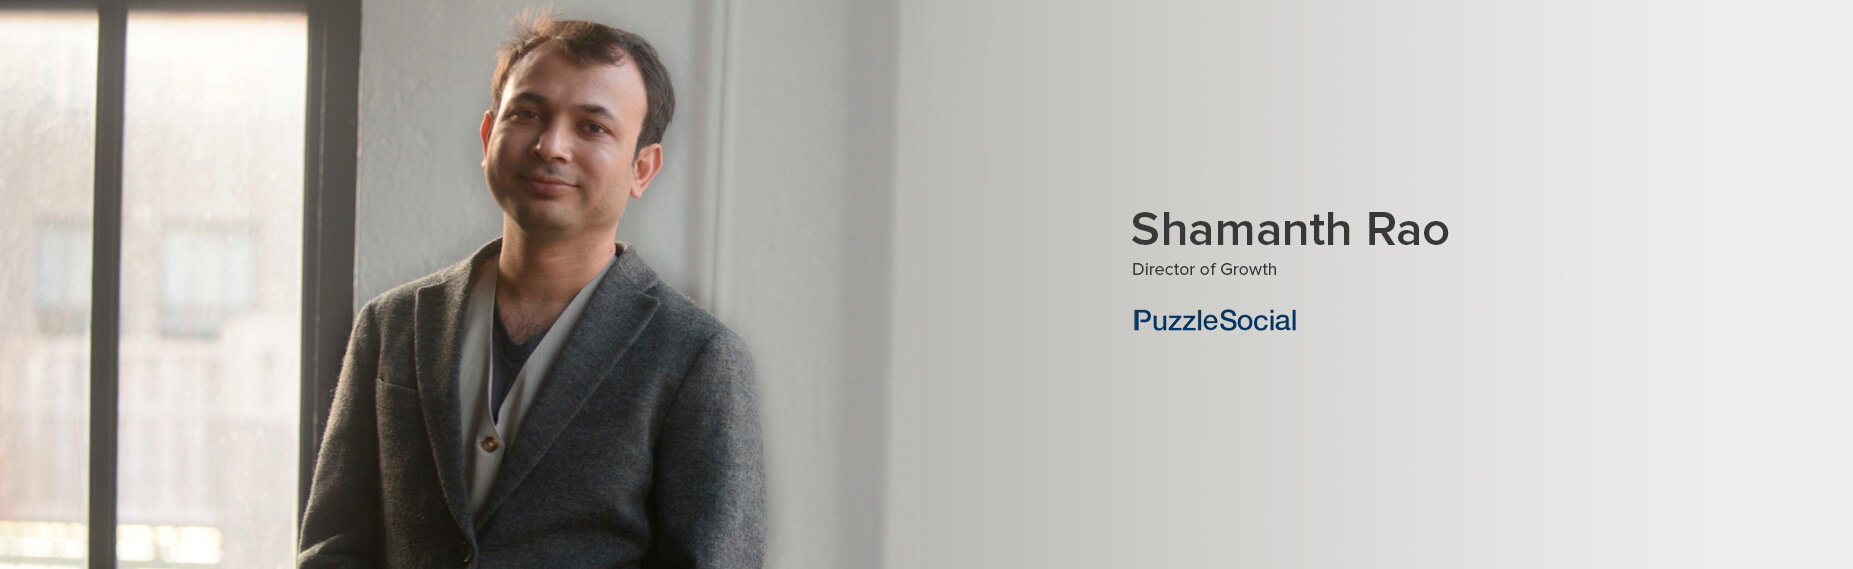 Shamanth Rao, Director of Growth at PuzzleSocial